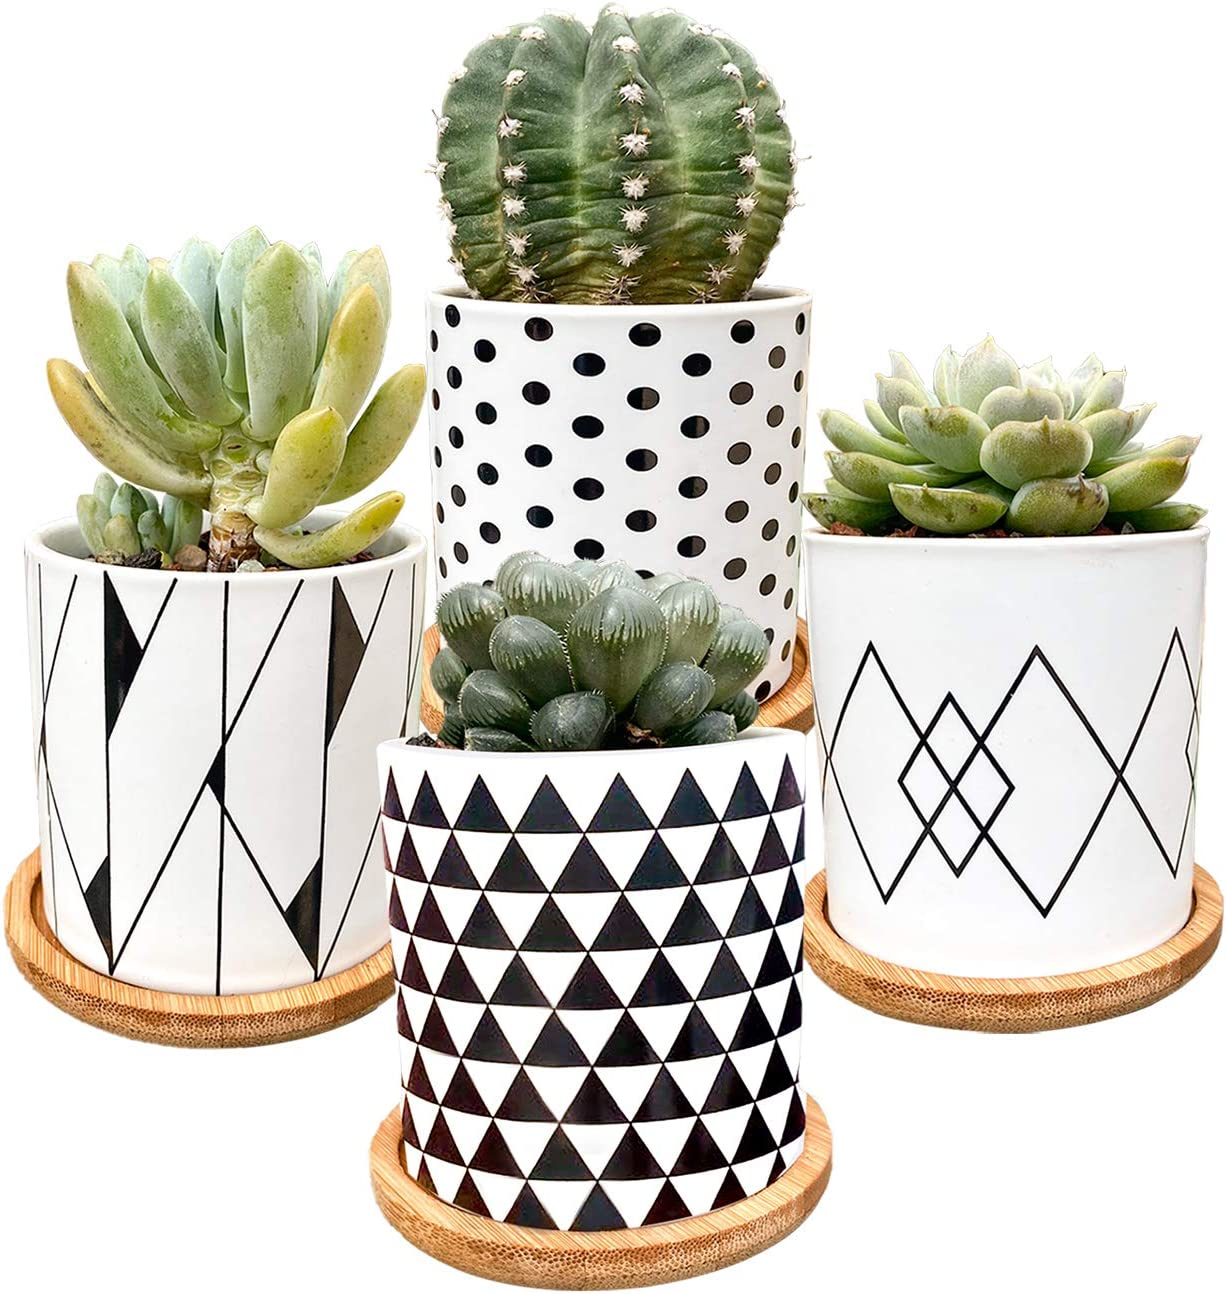 Succulent Plants Pots,Flower Pots Geometry Pots for Plants Planter Pots Indoor&Outdoor Ceramic Plants Pots for Cactus with Drain Hole and Bamboo Tray,Set of 4